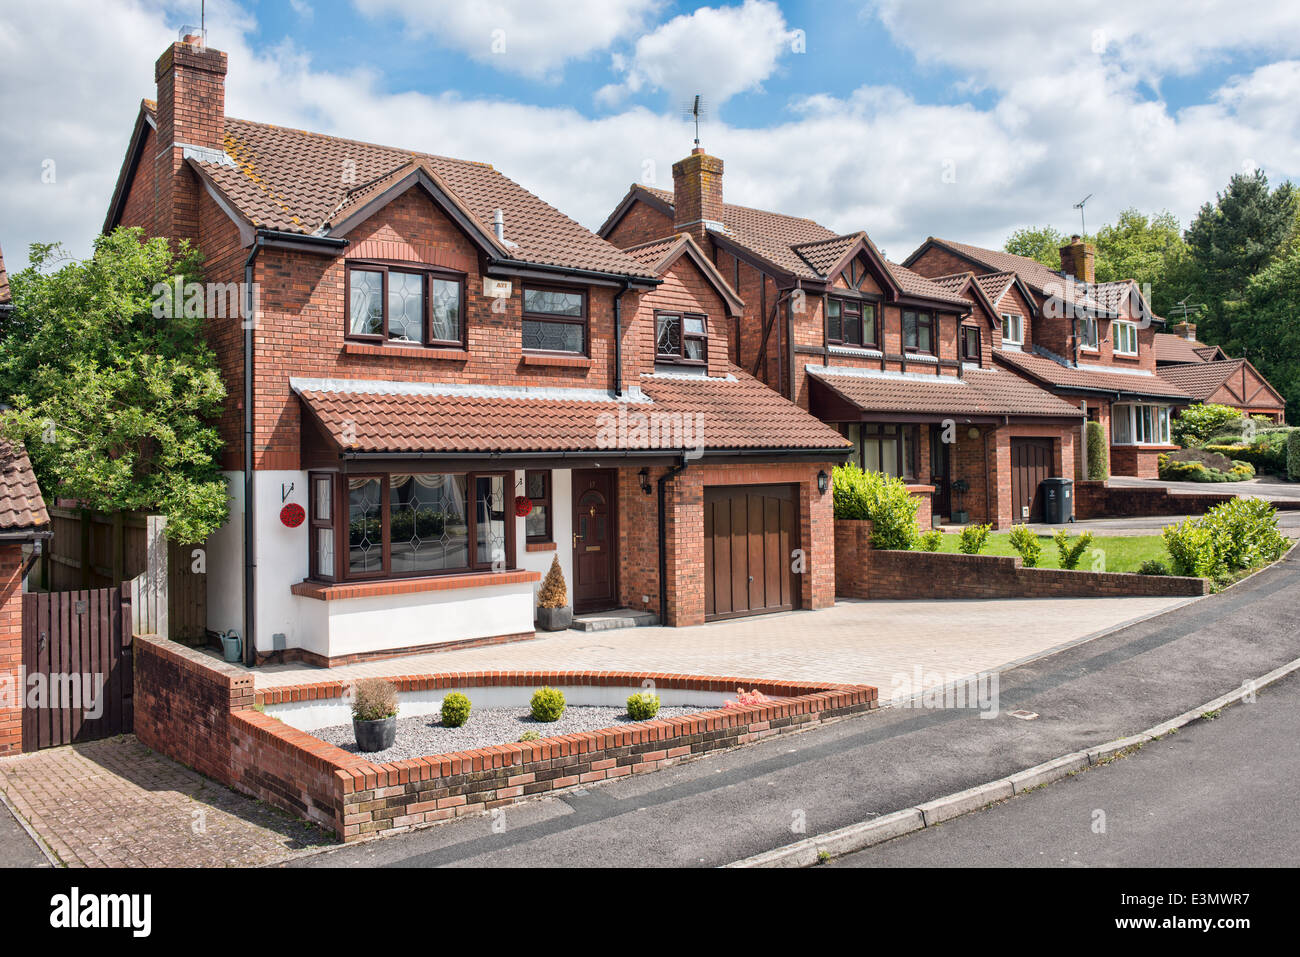 A typical row of suburban detached homes on a sunny street in Swindon, Wiltshire, UK - Stock Image